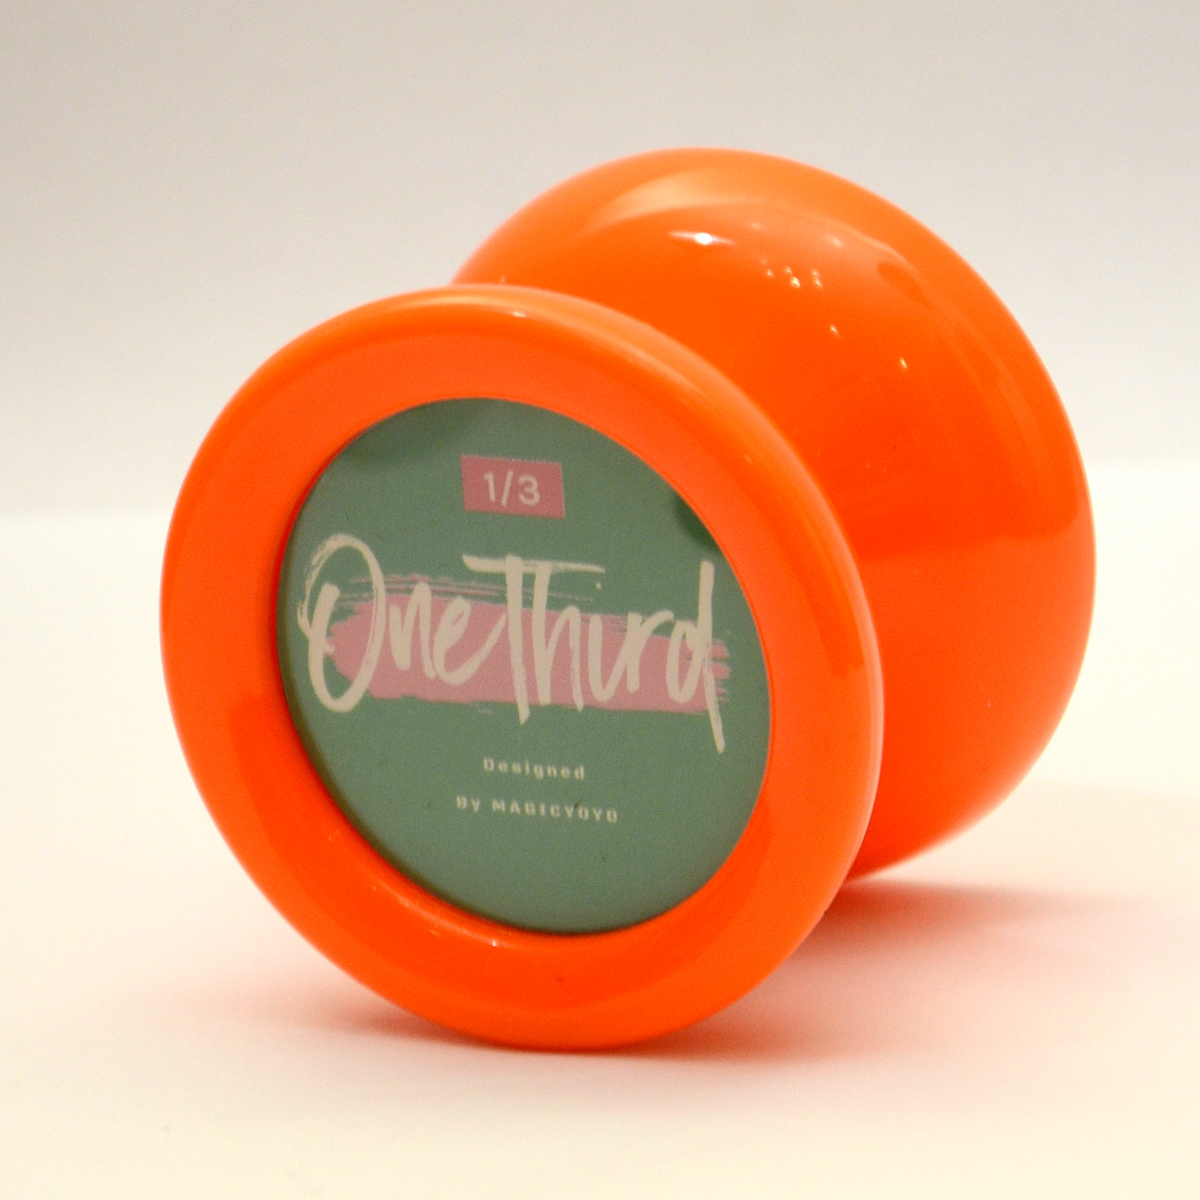 Magicyoyo D2 One Third